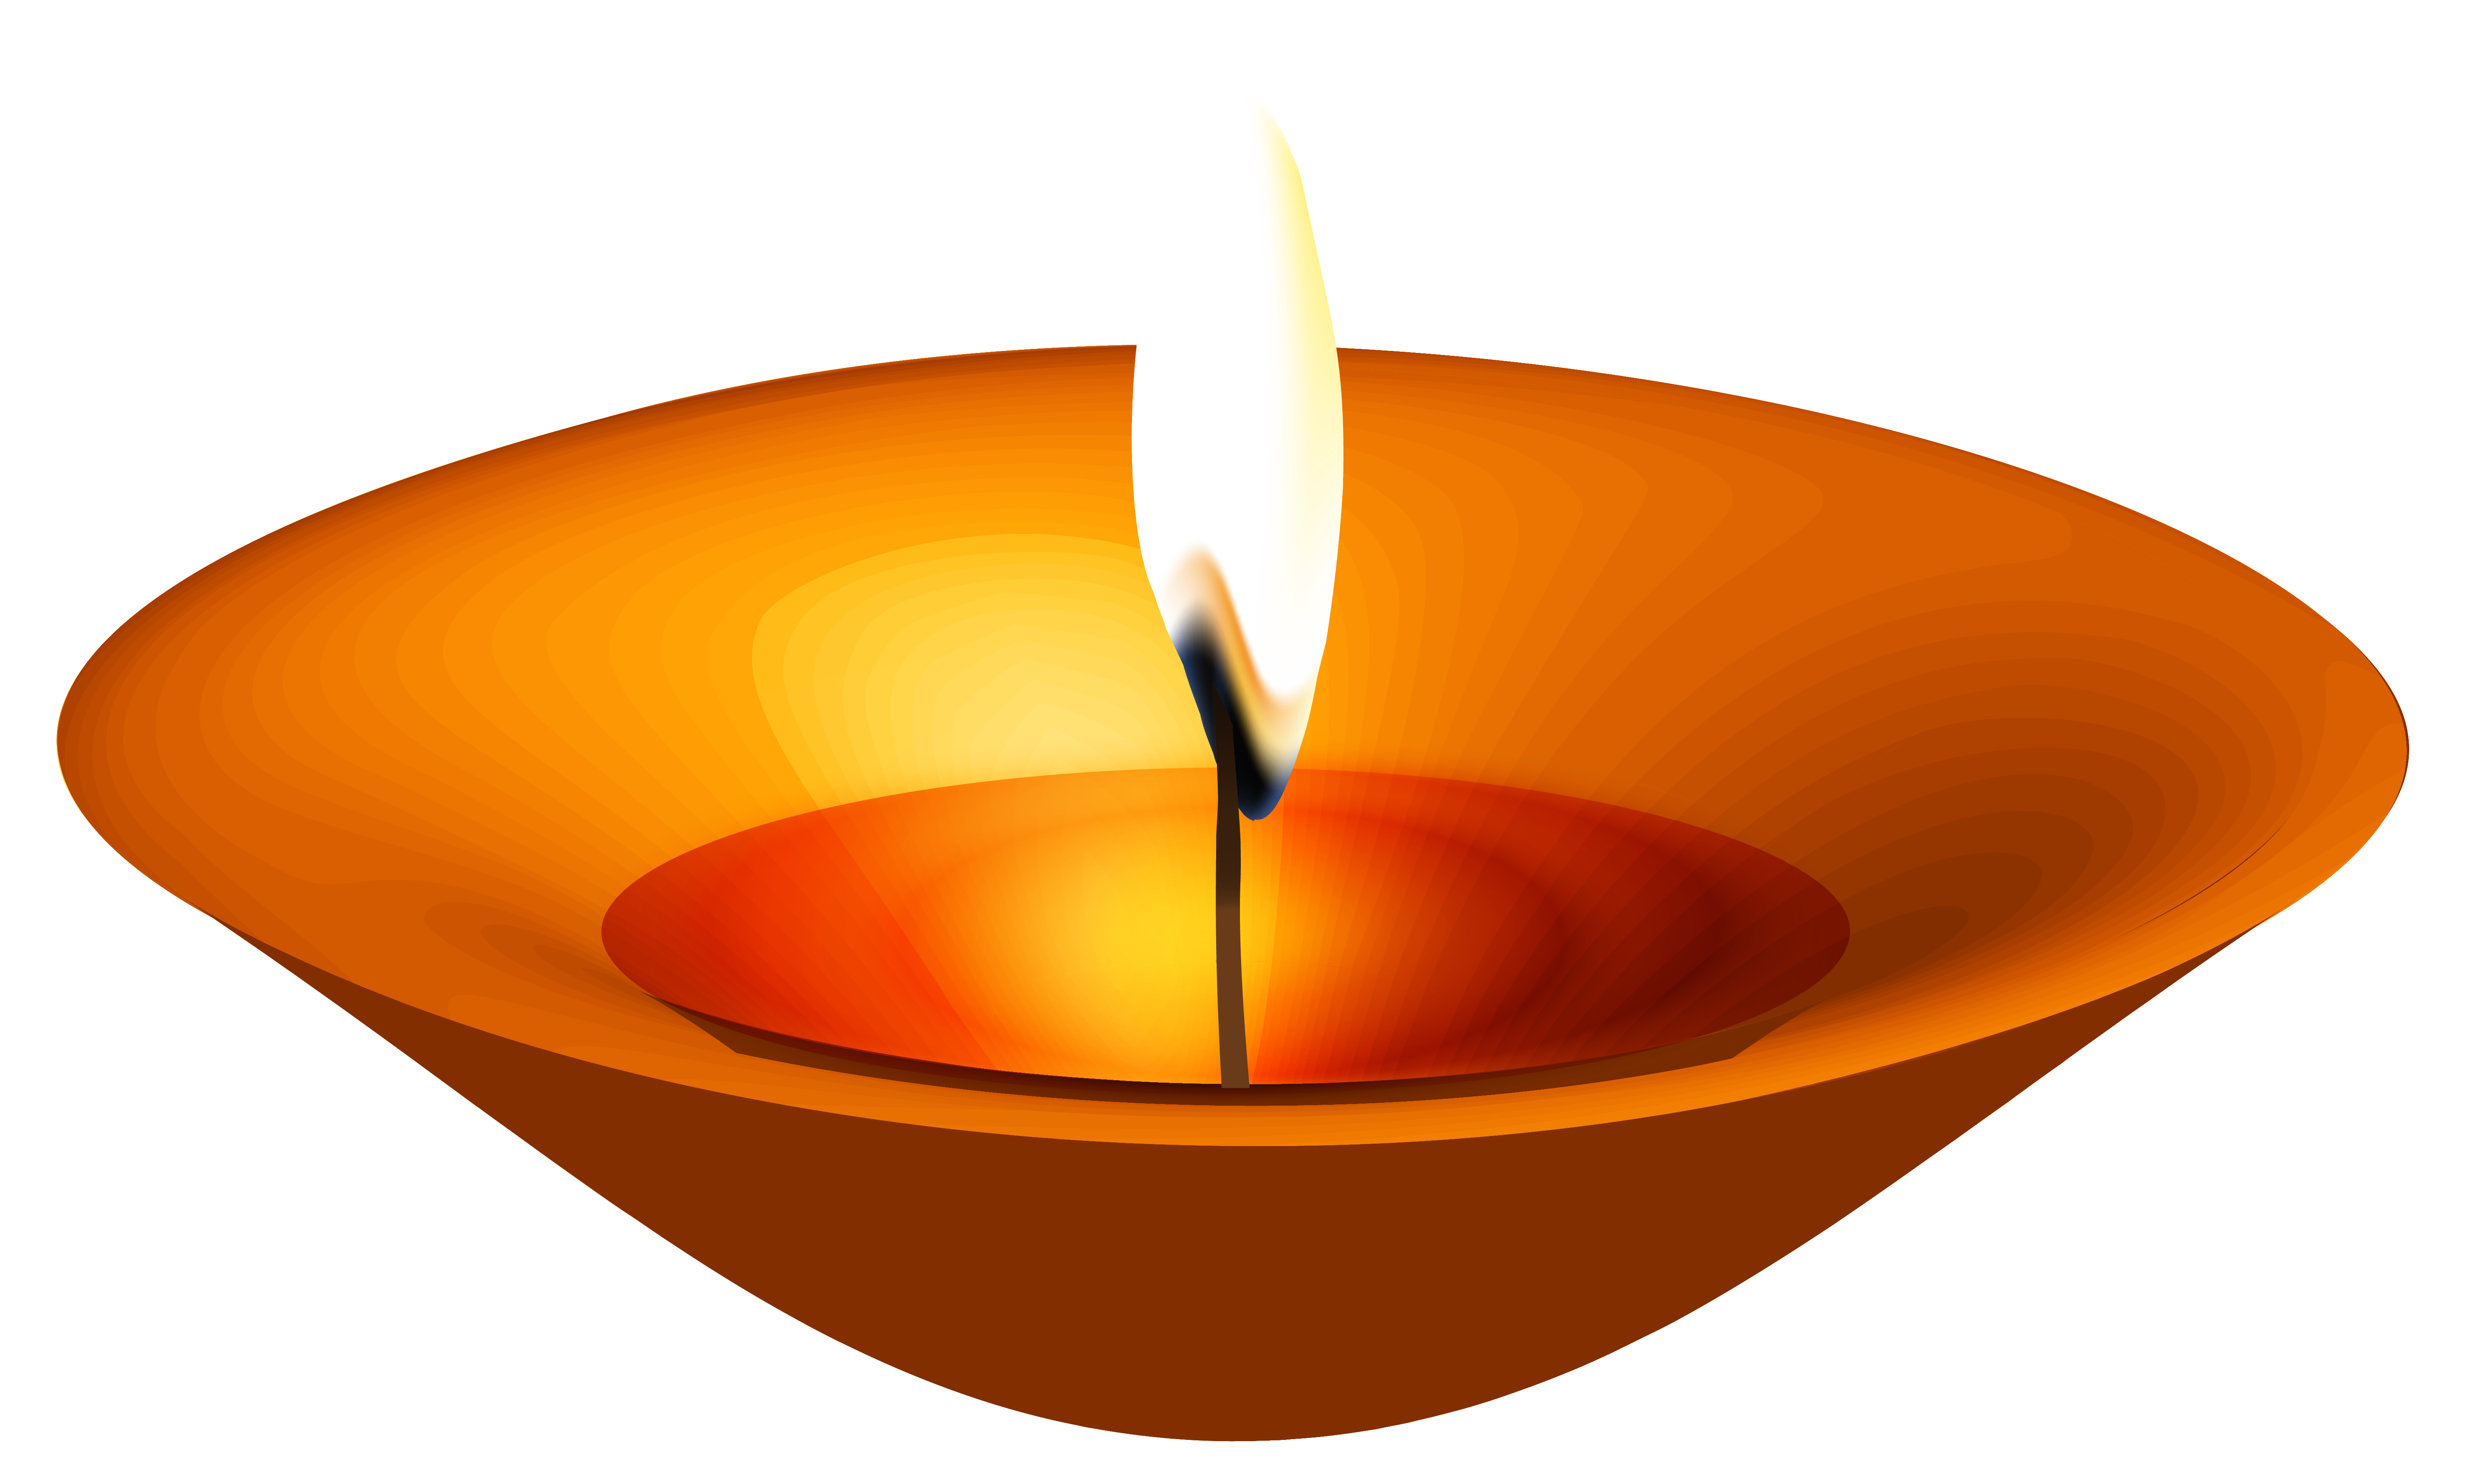 Book and candle clipart clipart royalty free Diwali Candle PNG Clipart Image | Places to Visit | Pinterest ... clipart royalty free